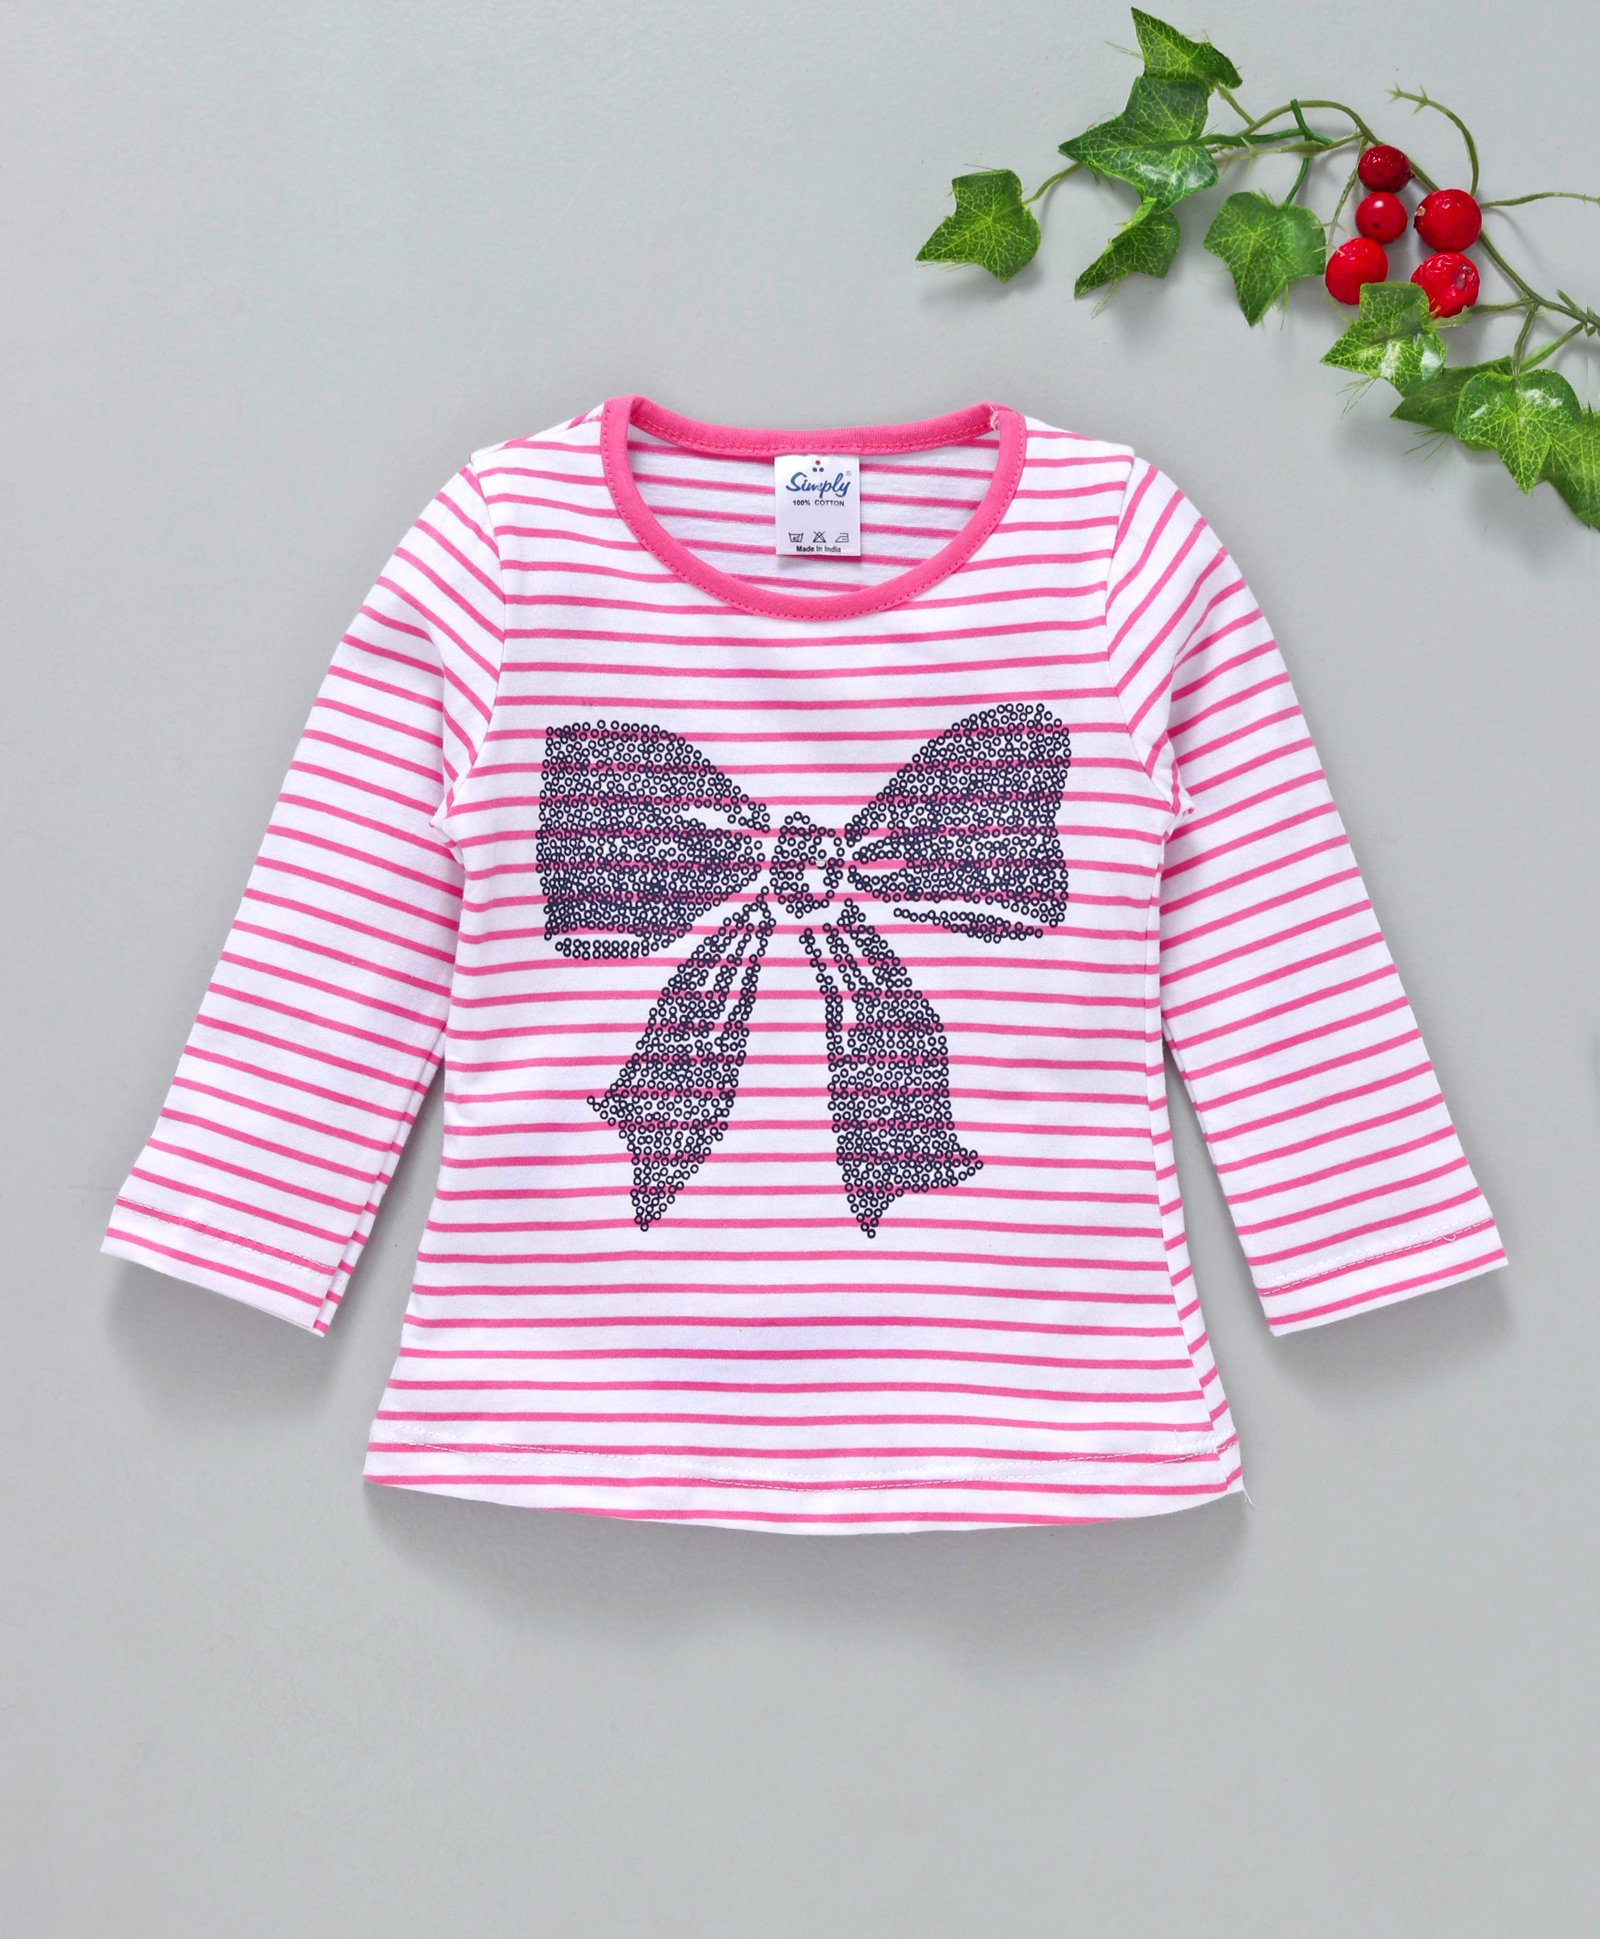 177d67052b748 Buy Simply Full Sleeves Striped Top Sequin Bow Design Pink for Girls (6-12  Months) Online in India, Shop at FirstCry.com - 2444065